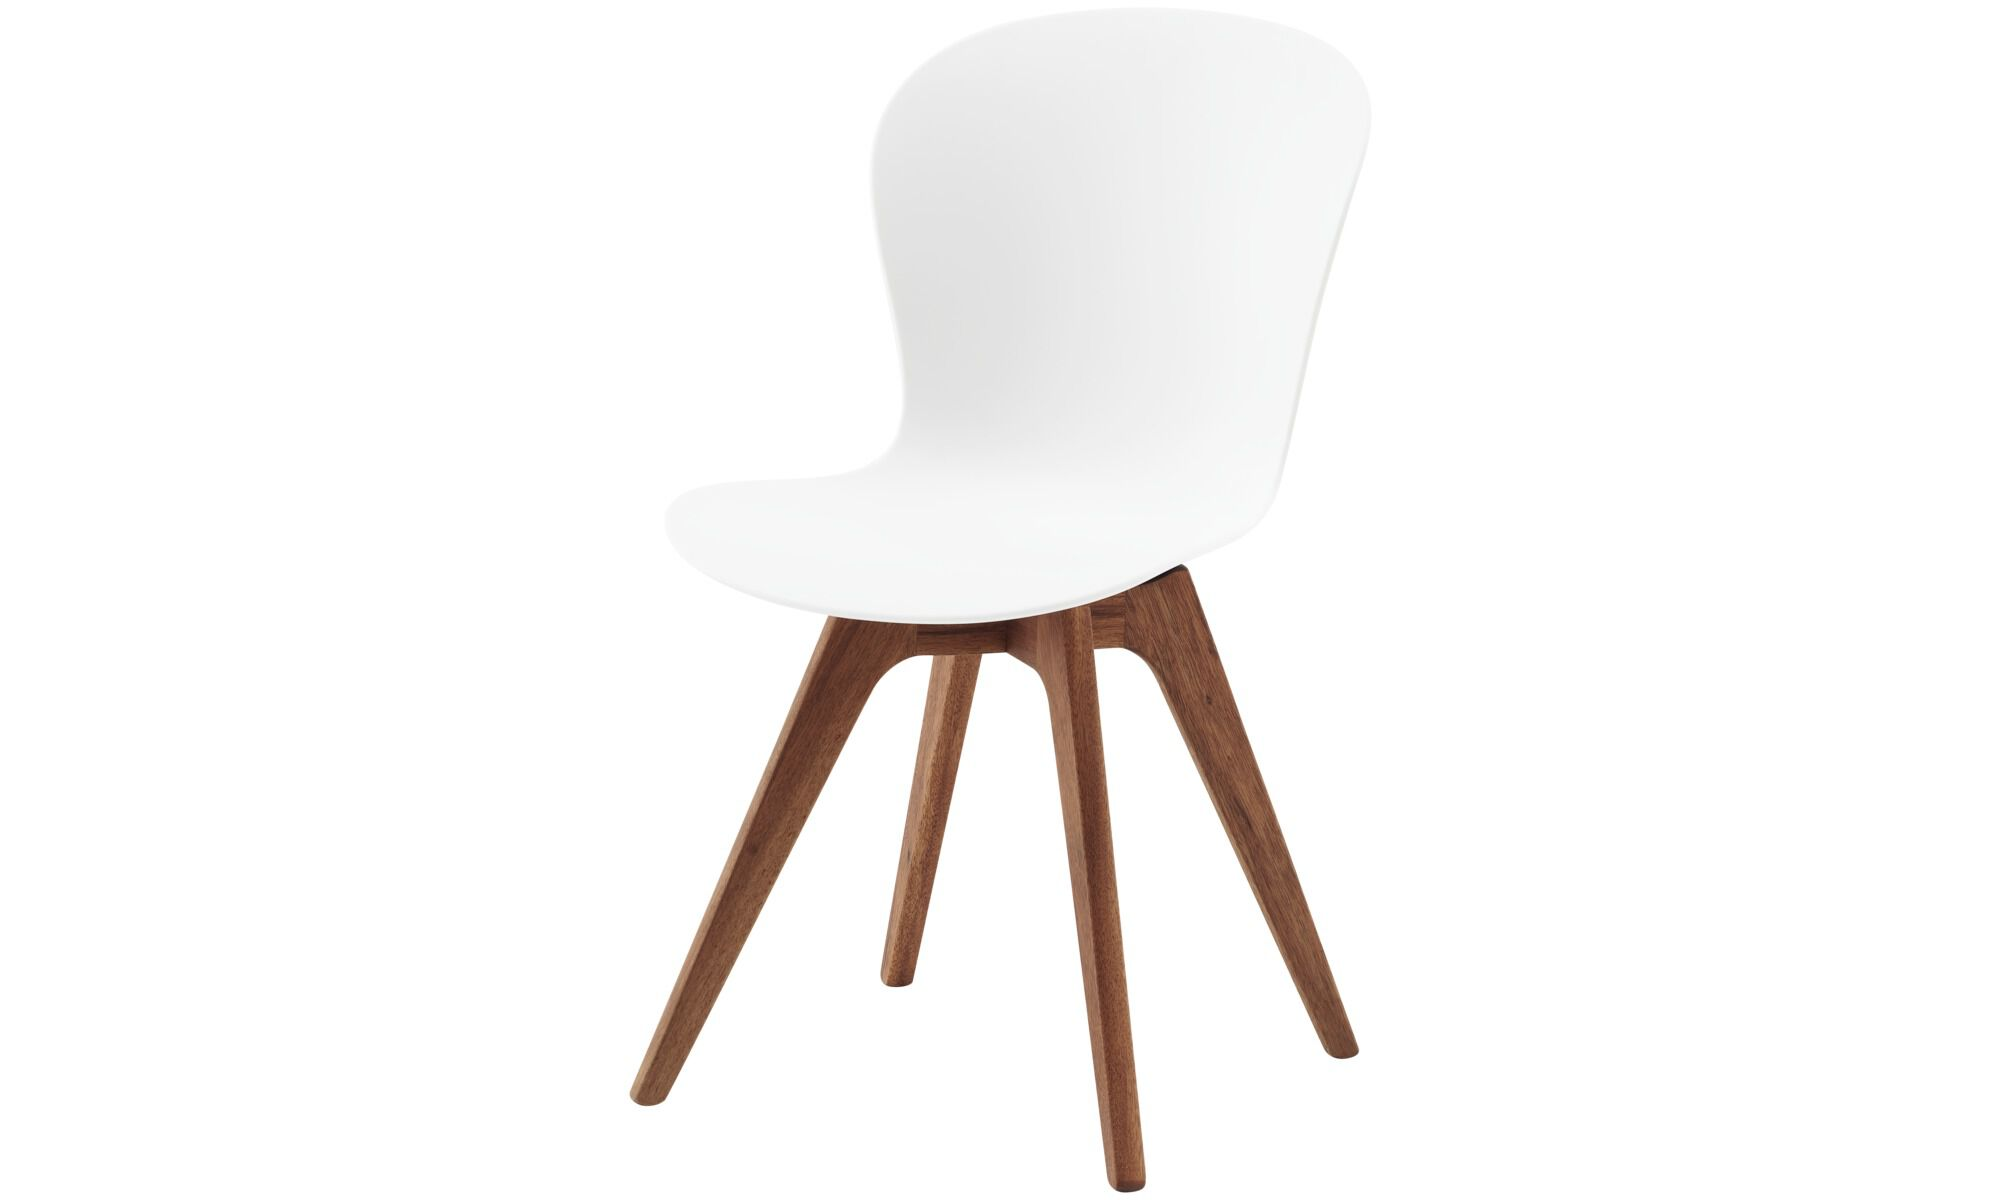 cheap plastic outdoor chairs fabric oak dining modern quality from boconcept adelaide chair for in and use white